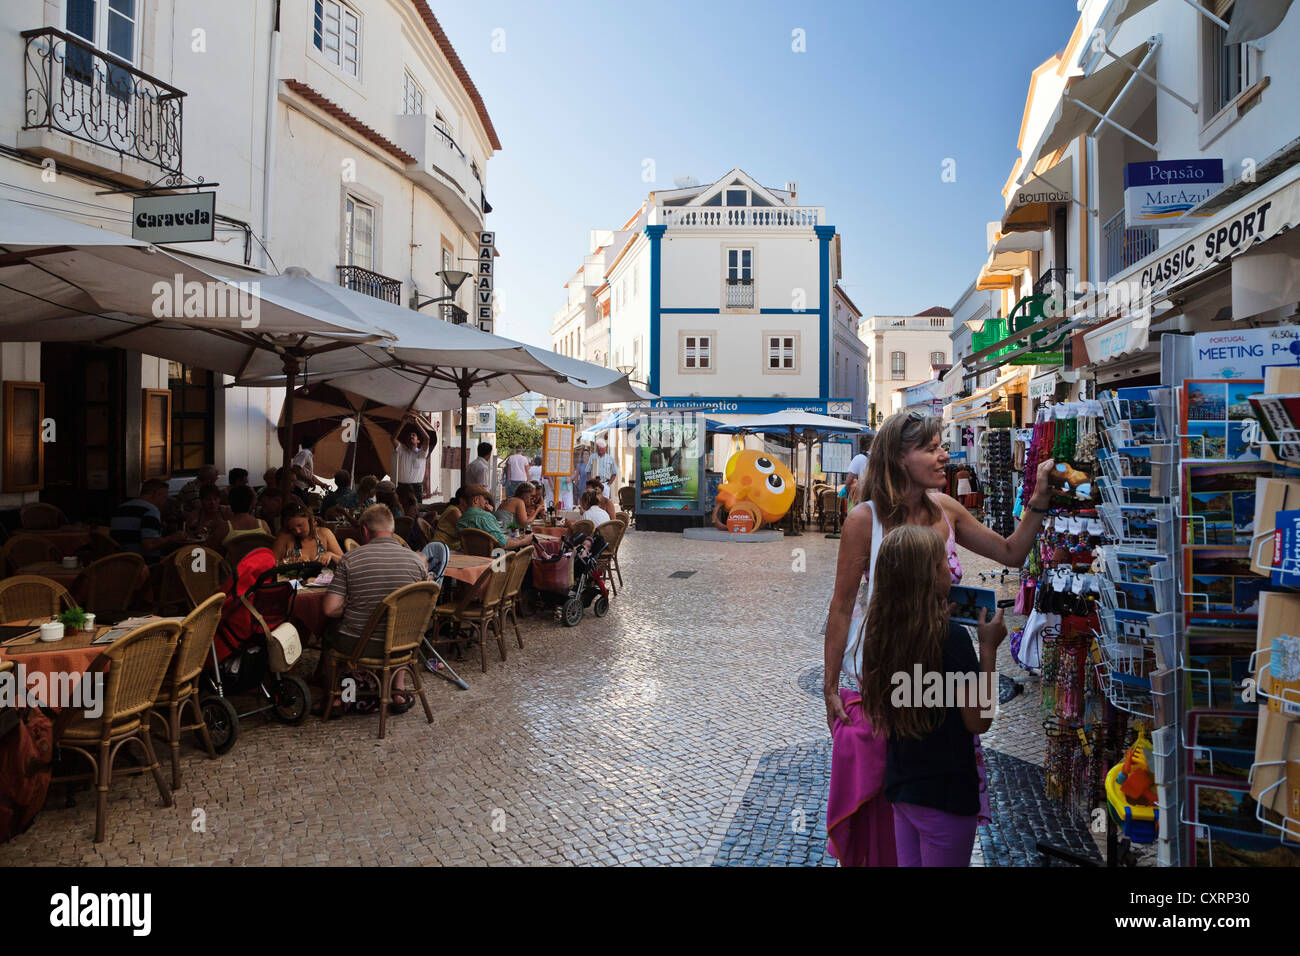 Cafes and a souvenir shop in Lagos, Algarve, Portugal, Europe - Stock Image